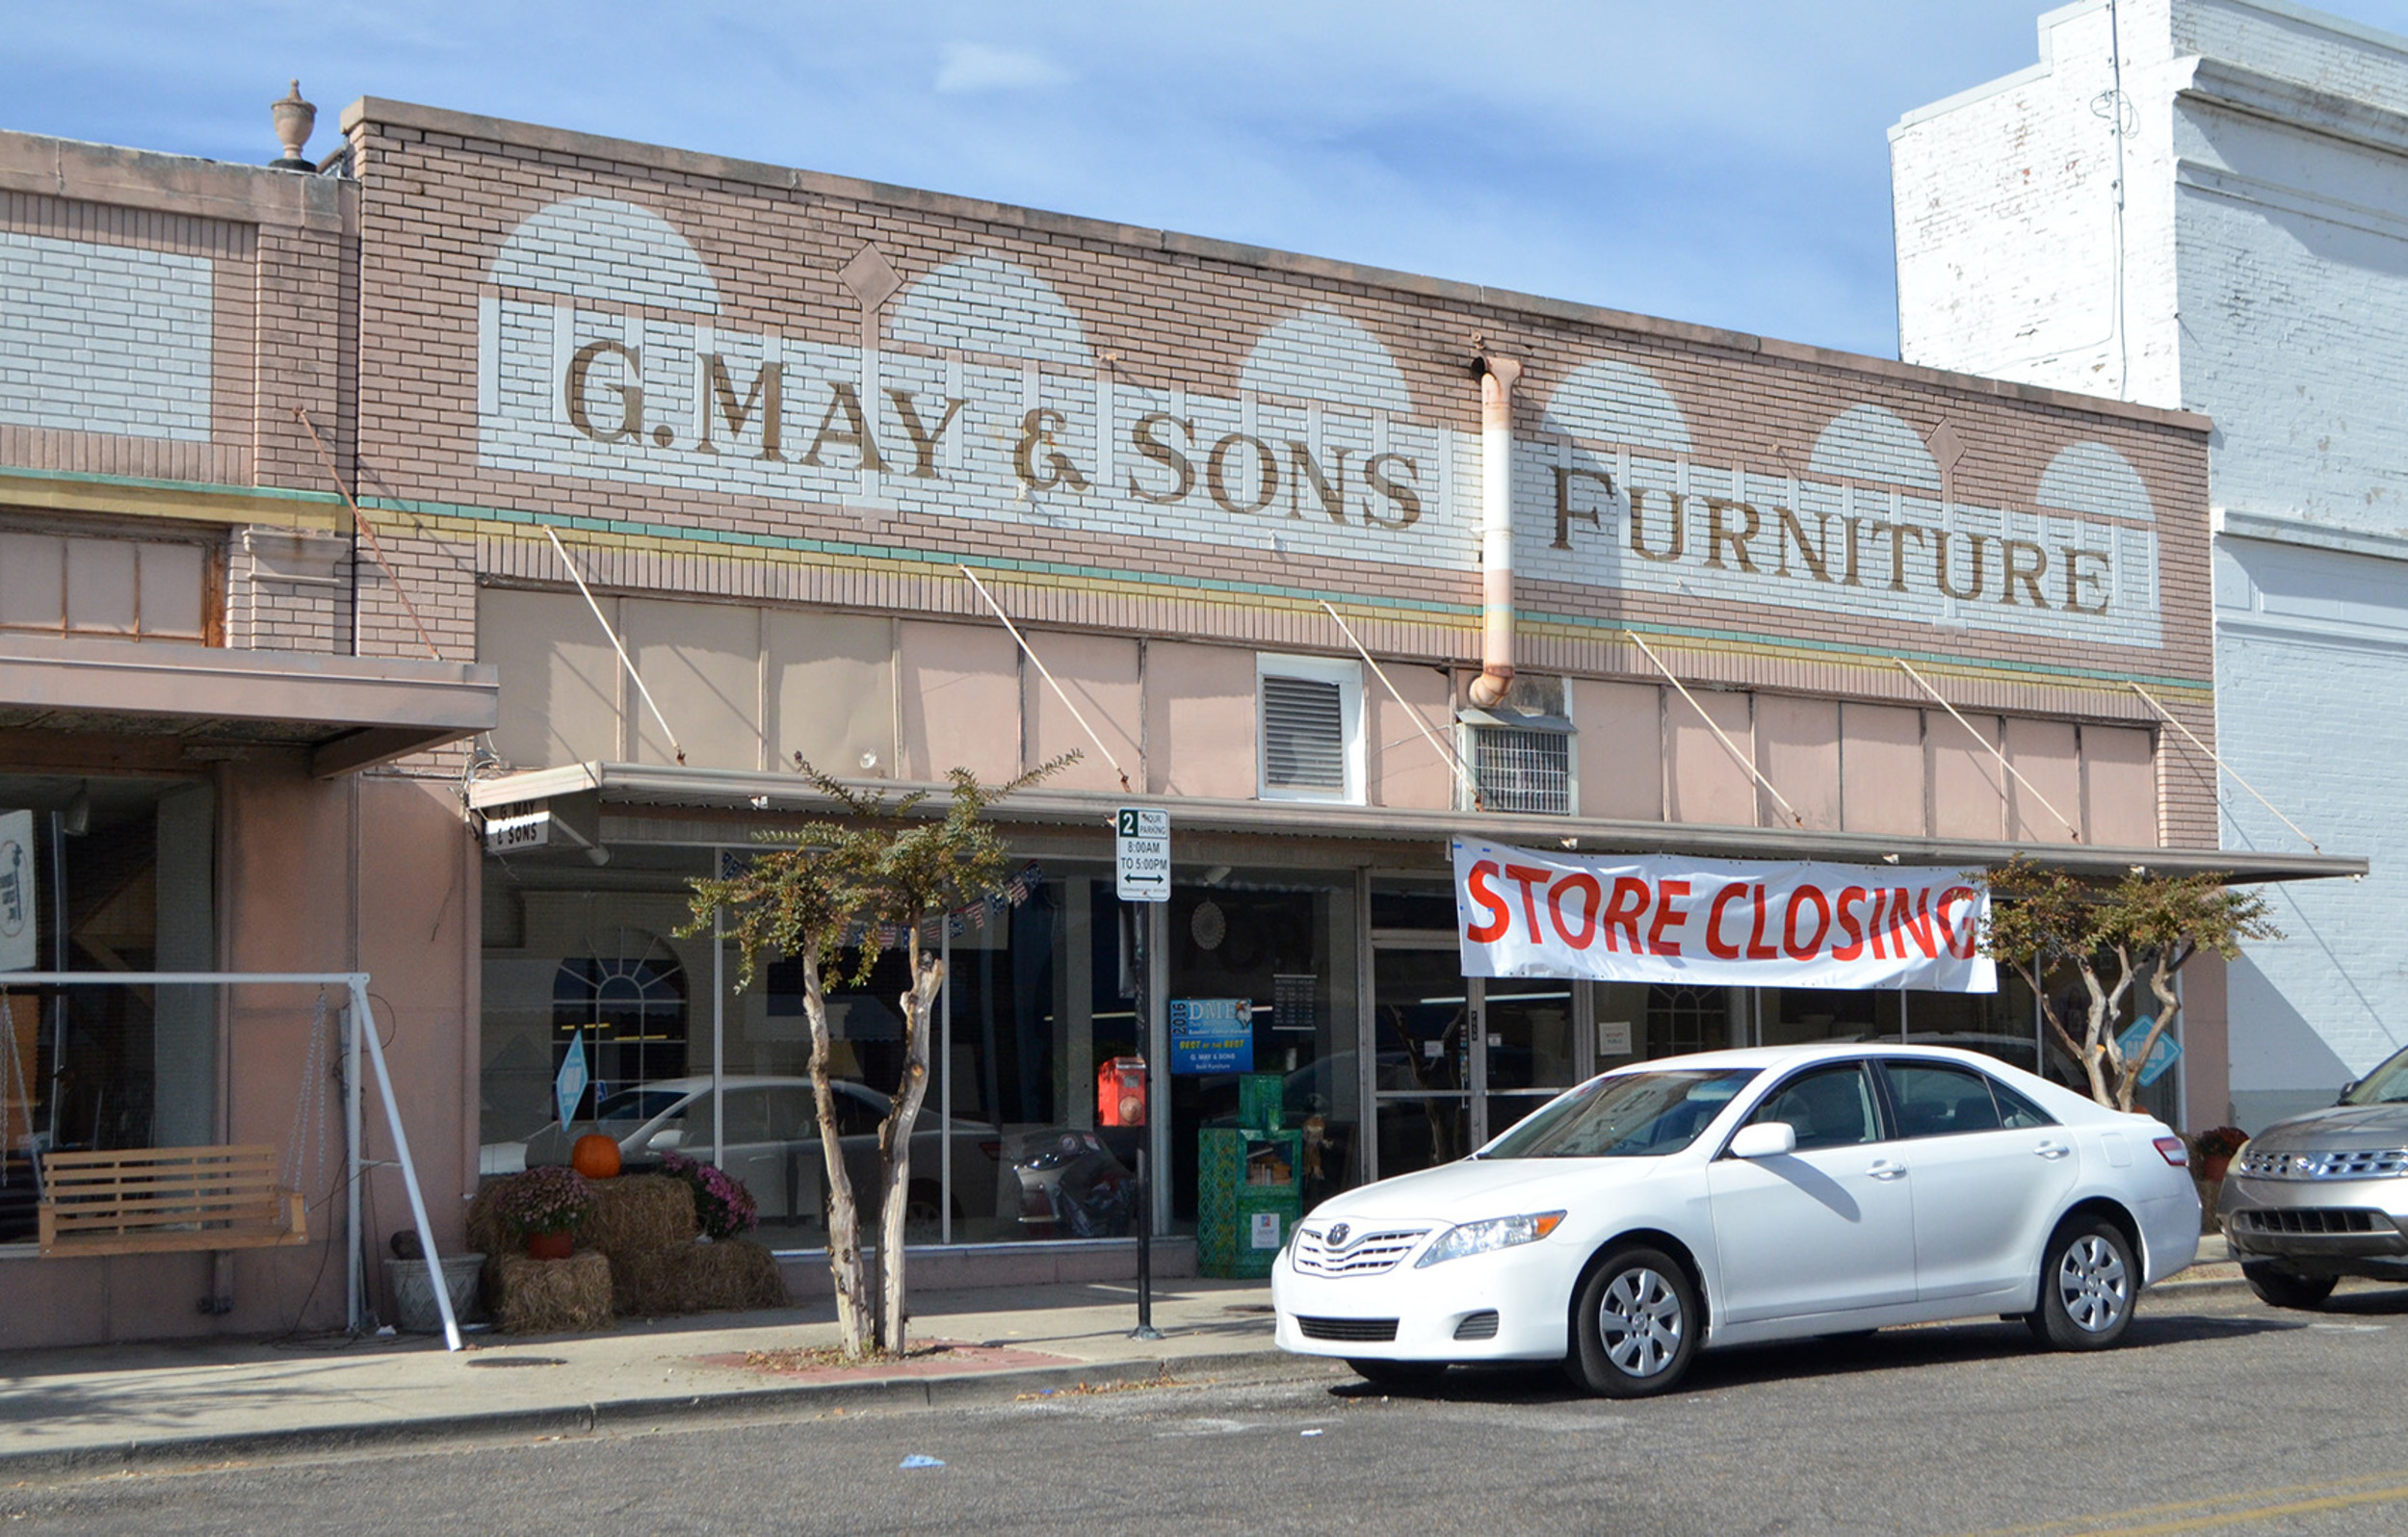 G. May U0026 Sons Furniture In Downtown Jasper Has Been Holding A Store Closing  Sale